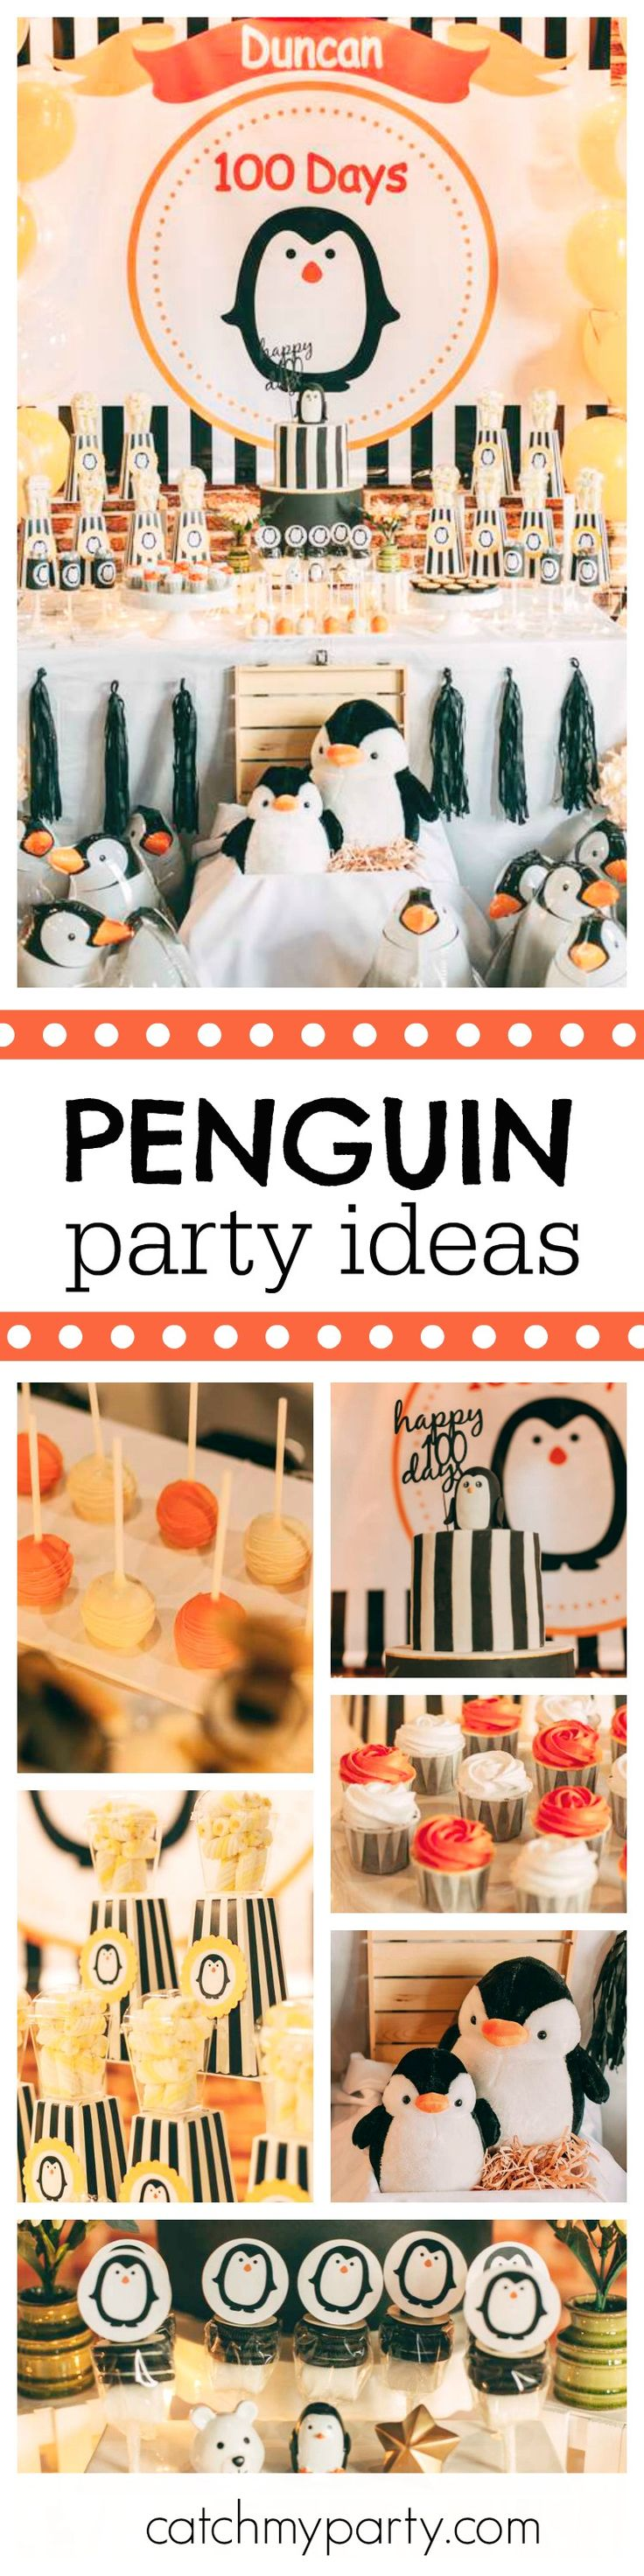 Take a look at this cute Penguin 100 day celebration party! The black & white striped birthday cake is awesome!! See more party ideas and share yours at CatchMyParty.com